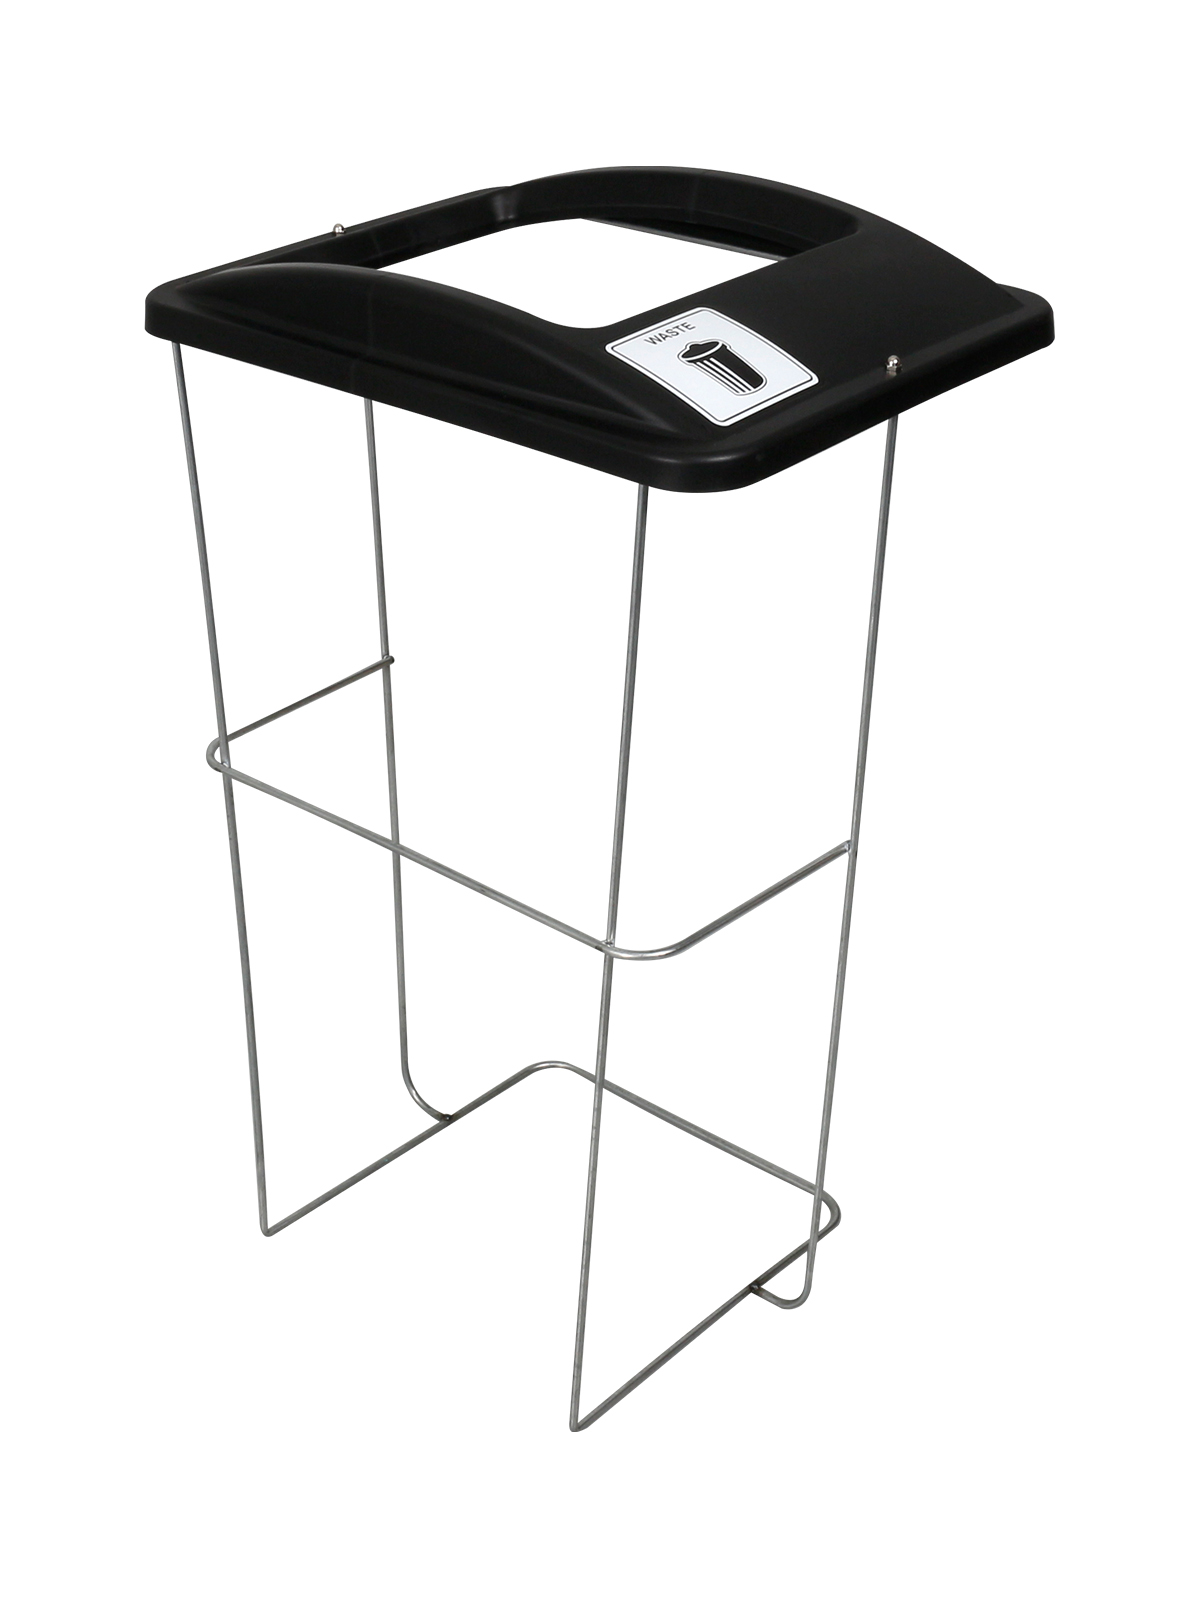 WIRE EVENT CONTAINER (5 Pack) - Single - Waste - Full - Black